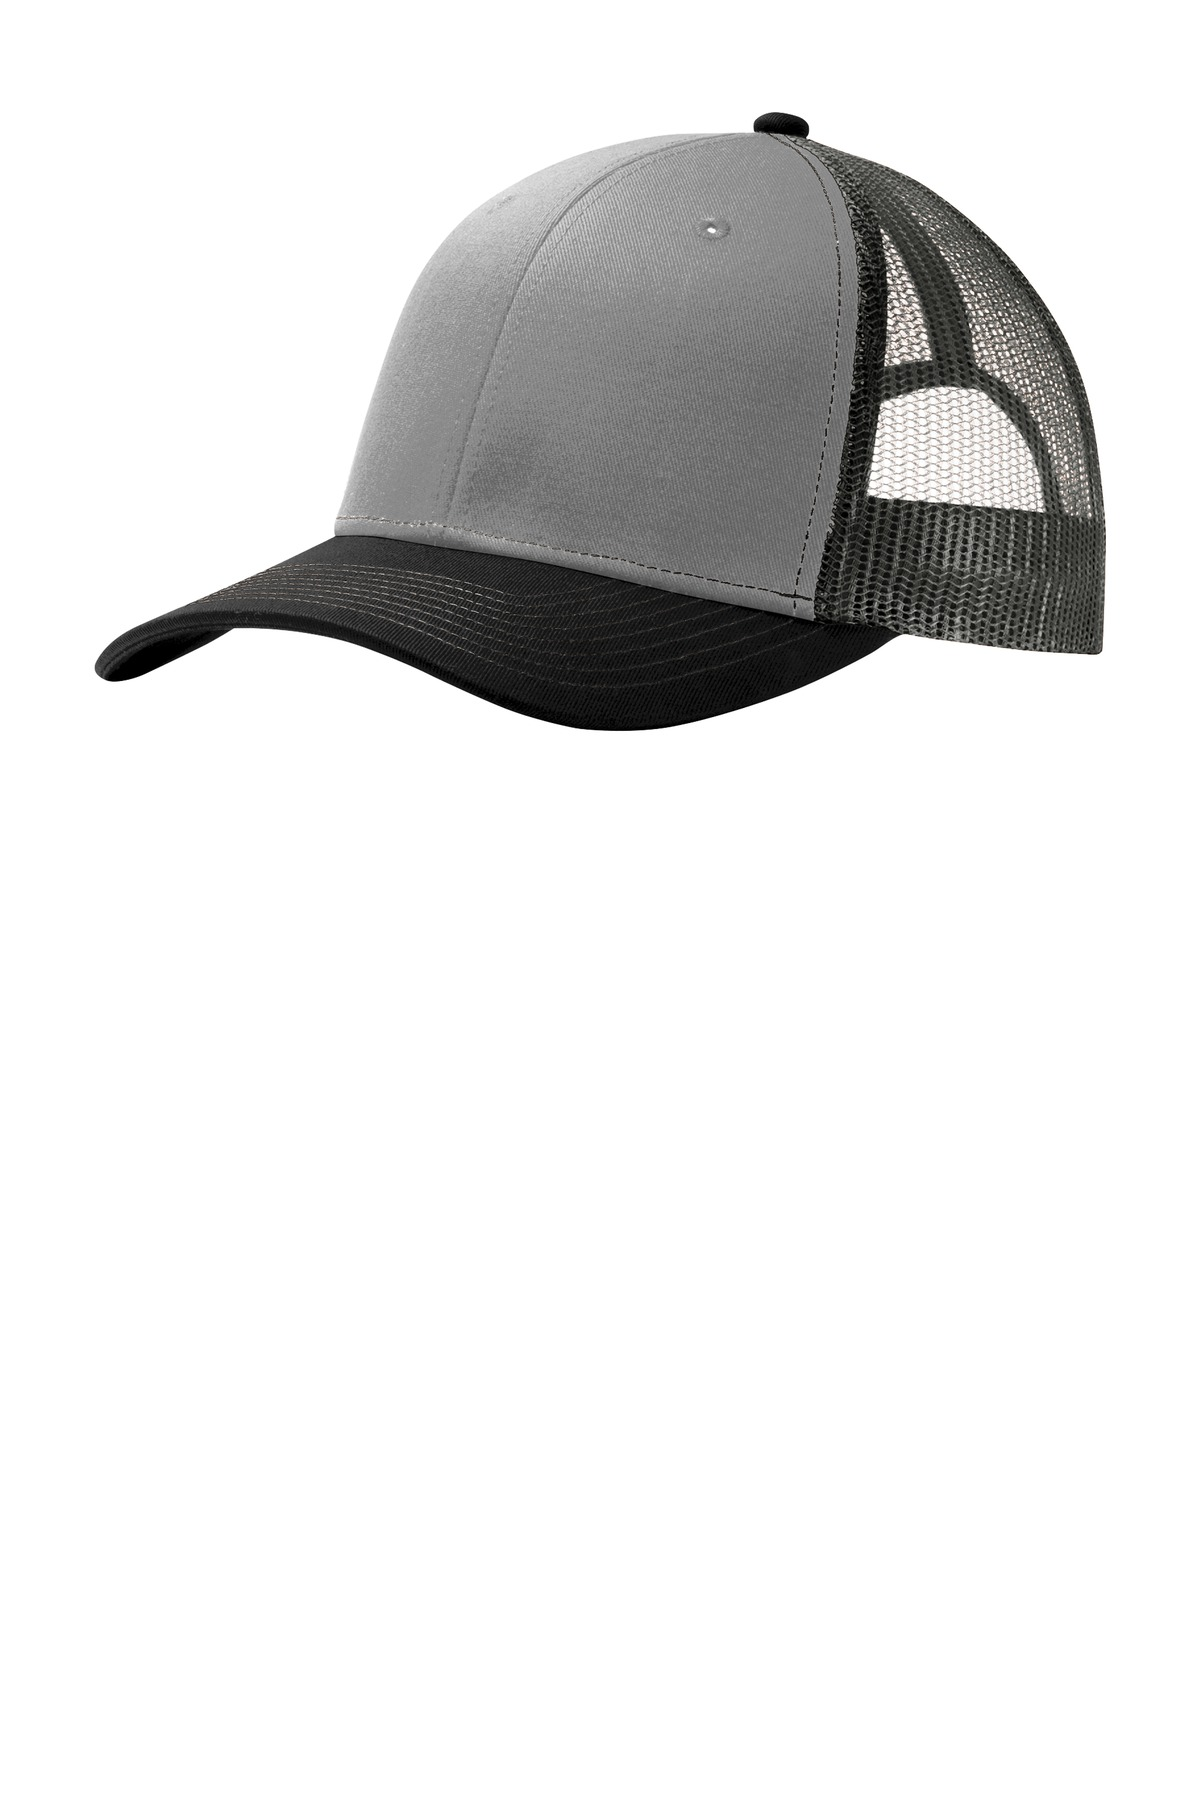 Port Authority ®  Snapback Trucker Cap. C112 - Gusty Grey/ Black/ Grey Steel